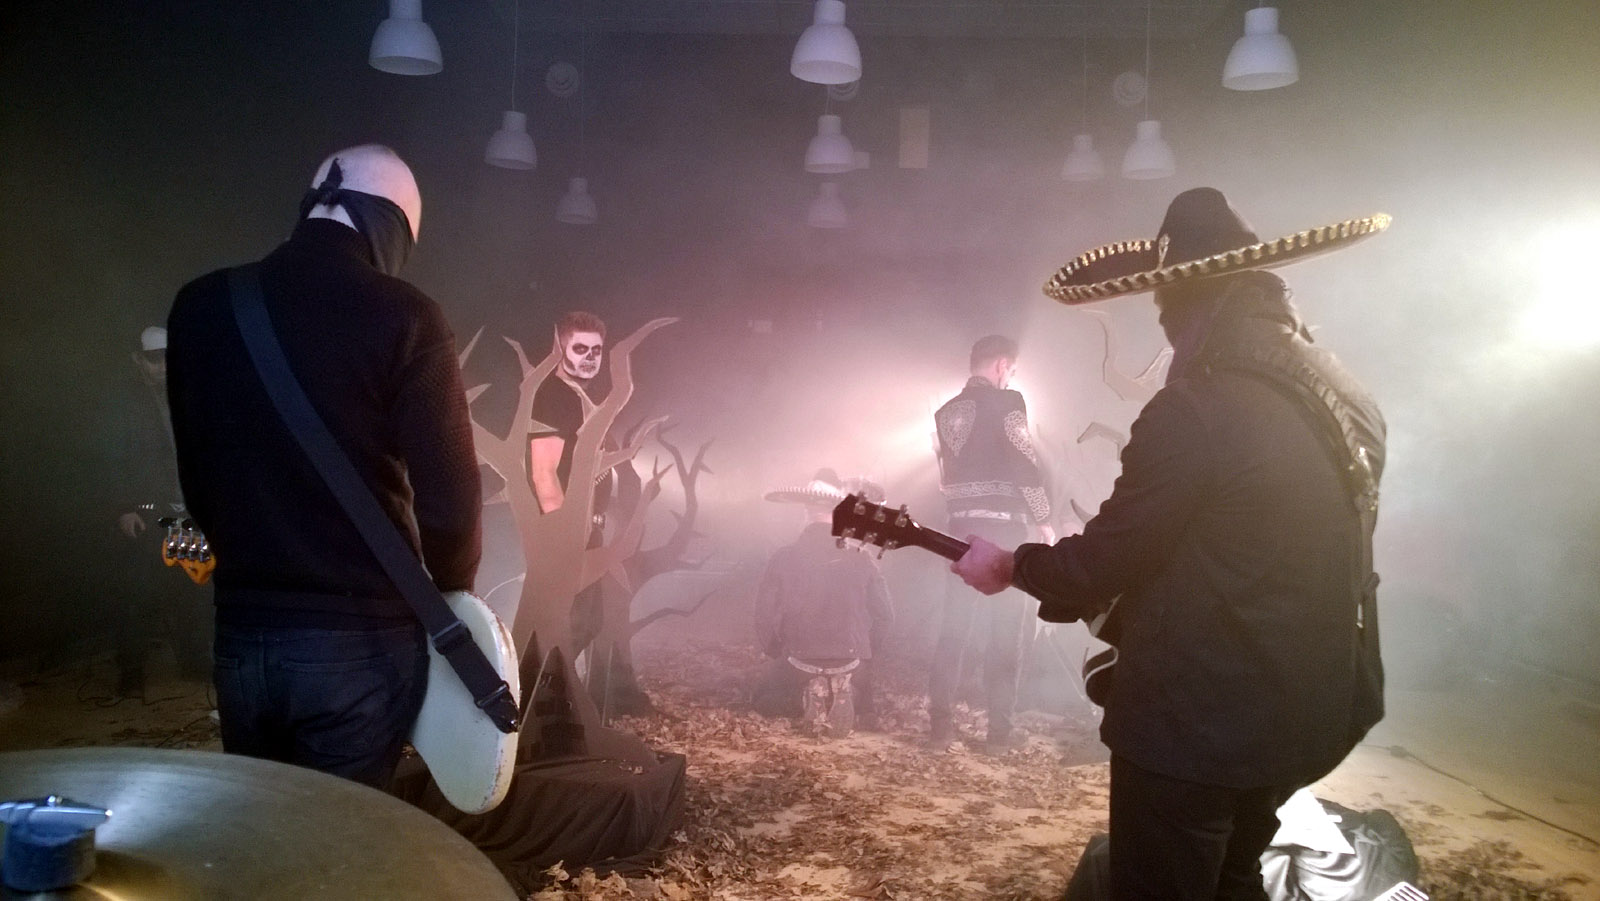 Hola Ghost (stunt ghosts) video shoot for